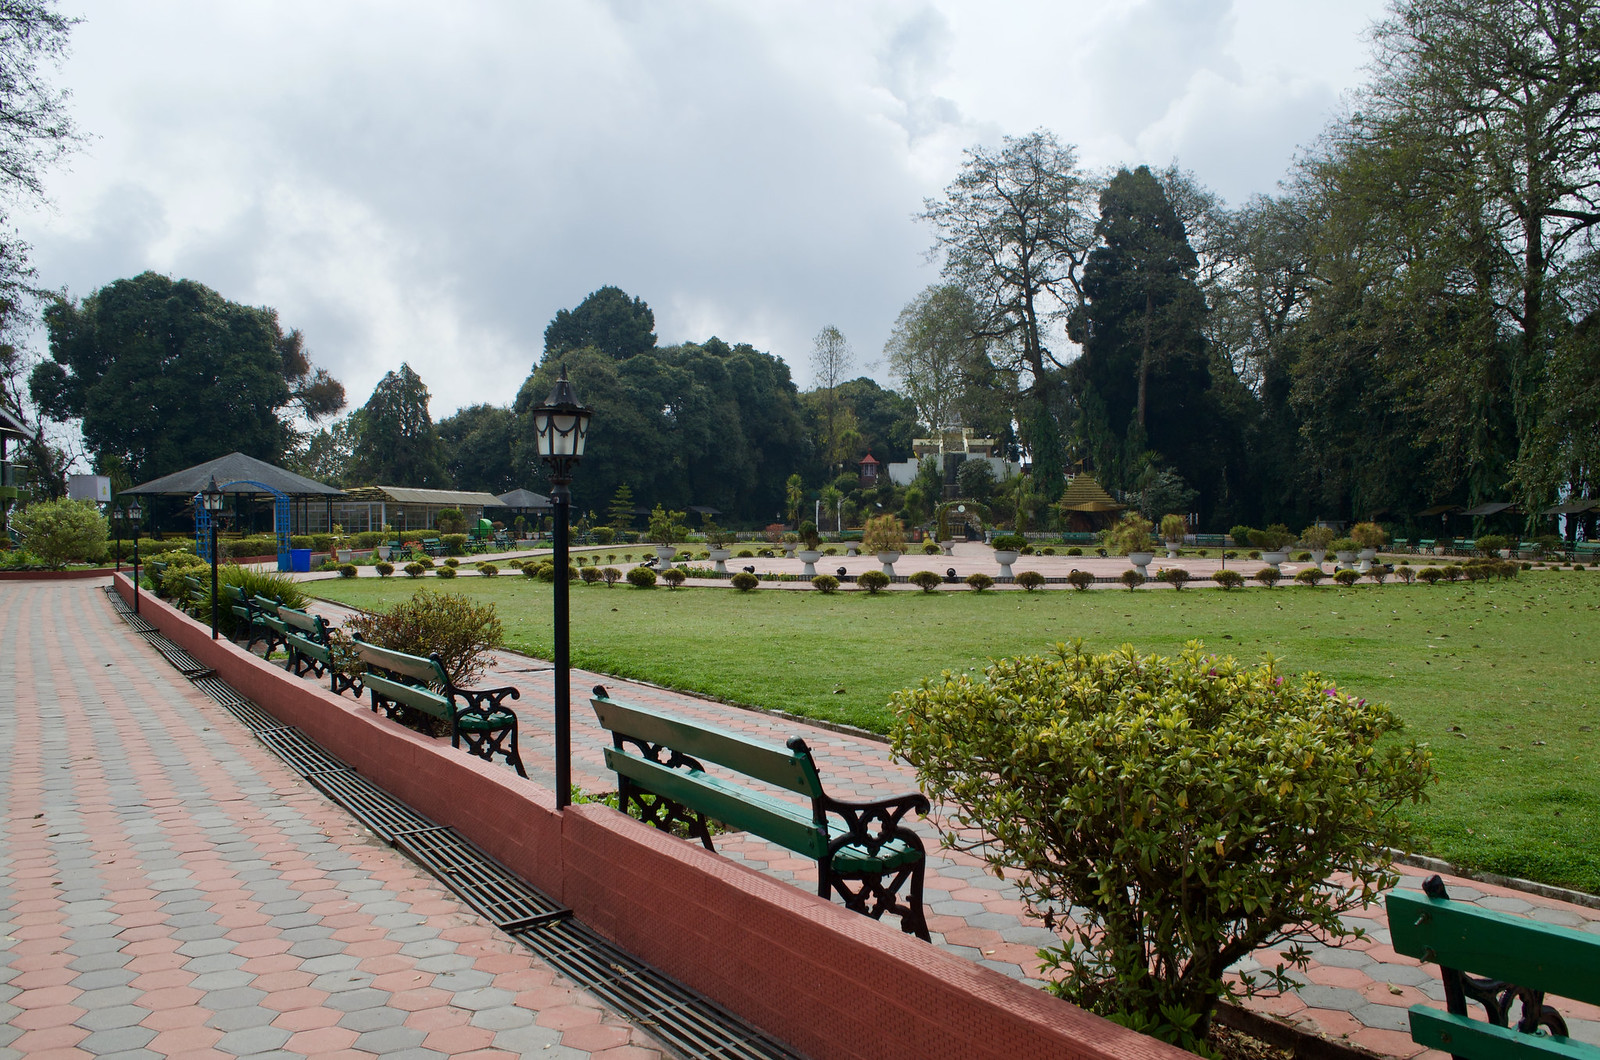 Having A Fabulous Picnic At The Nightingale Park | Things in Darjeeling That Every Traveler Must Do